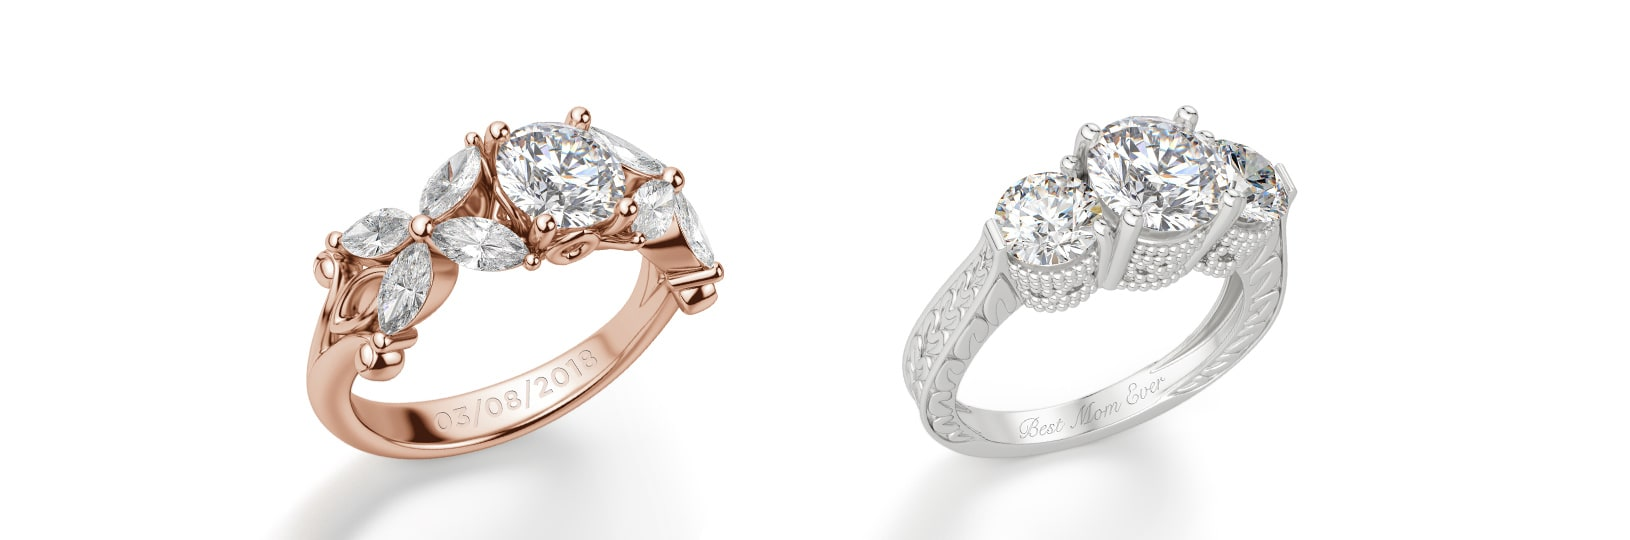 Two engagement rings with engraving